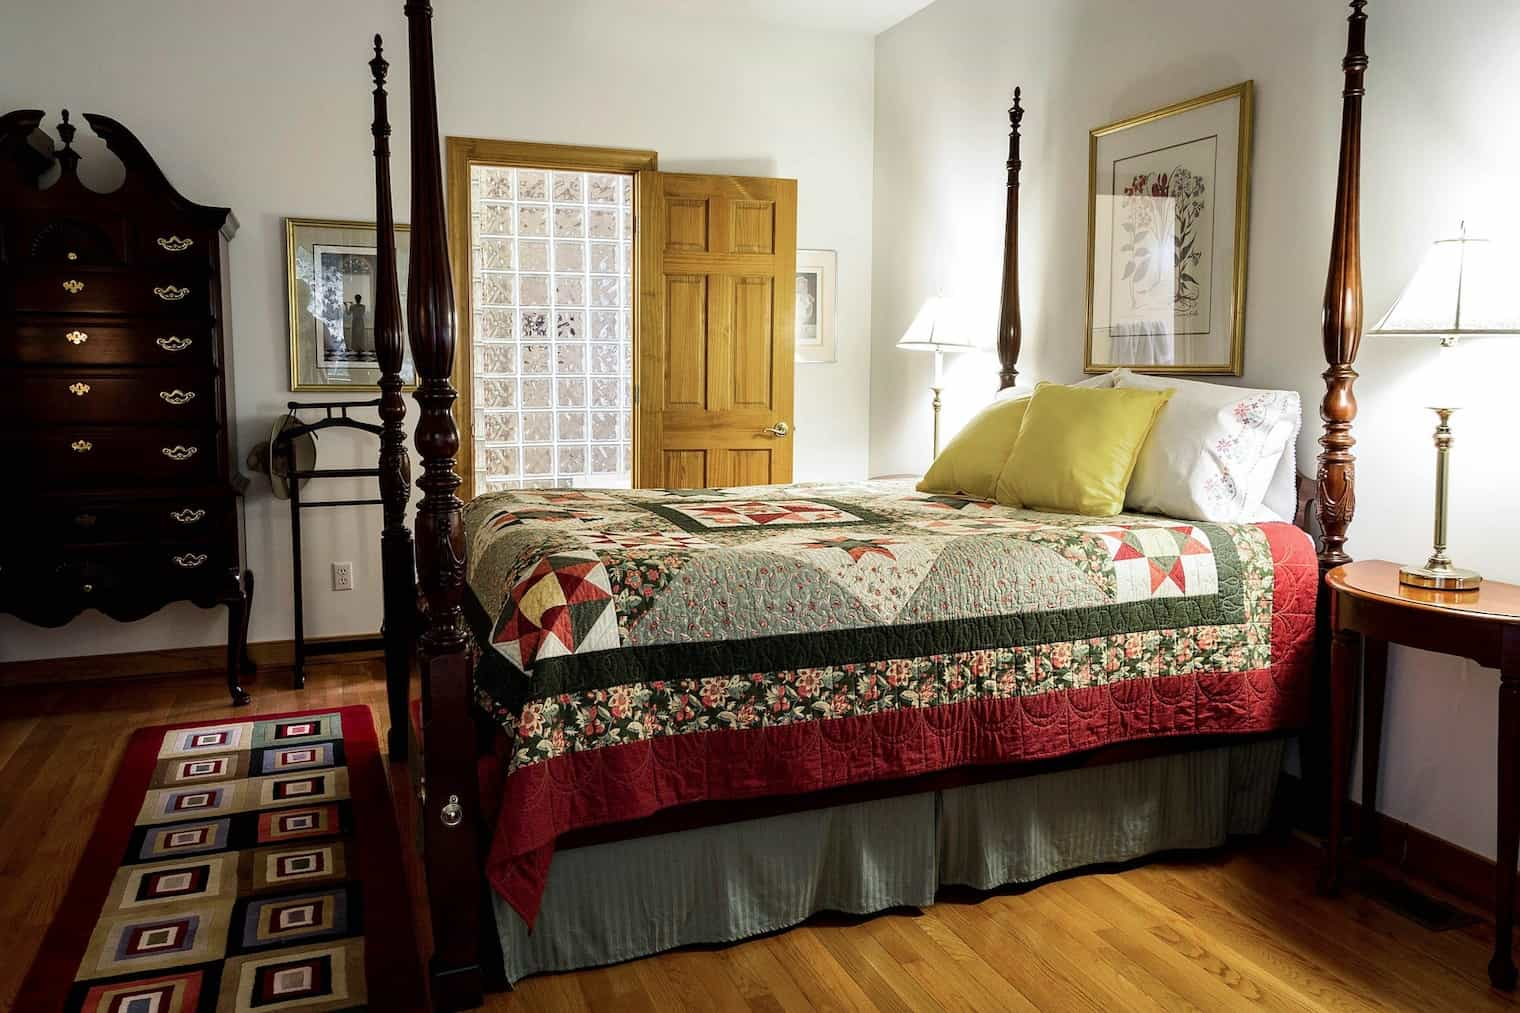 before buying an antique bed frame